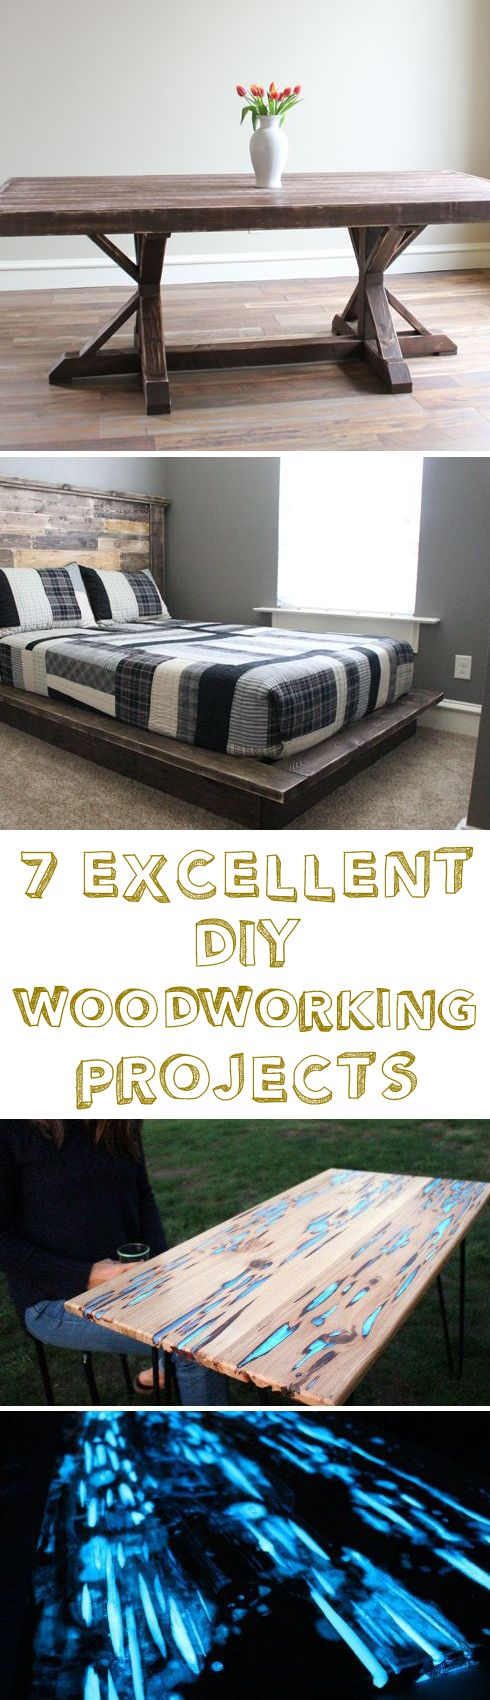 7 Excellent DIY Woodworking Projects | DIY | Pinterest